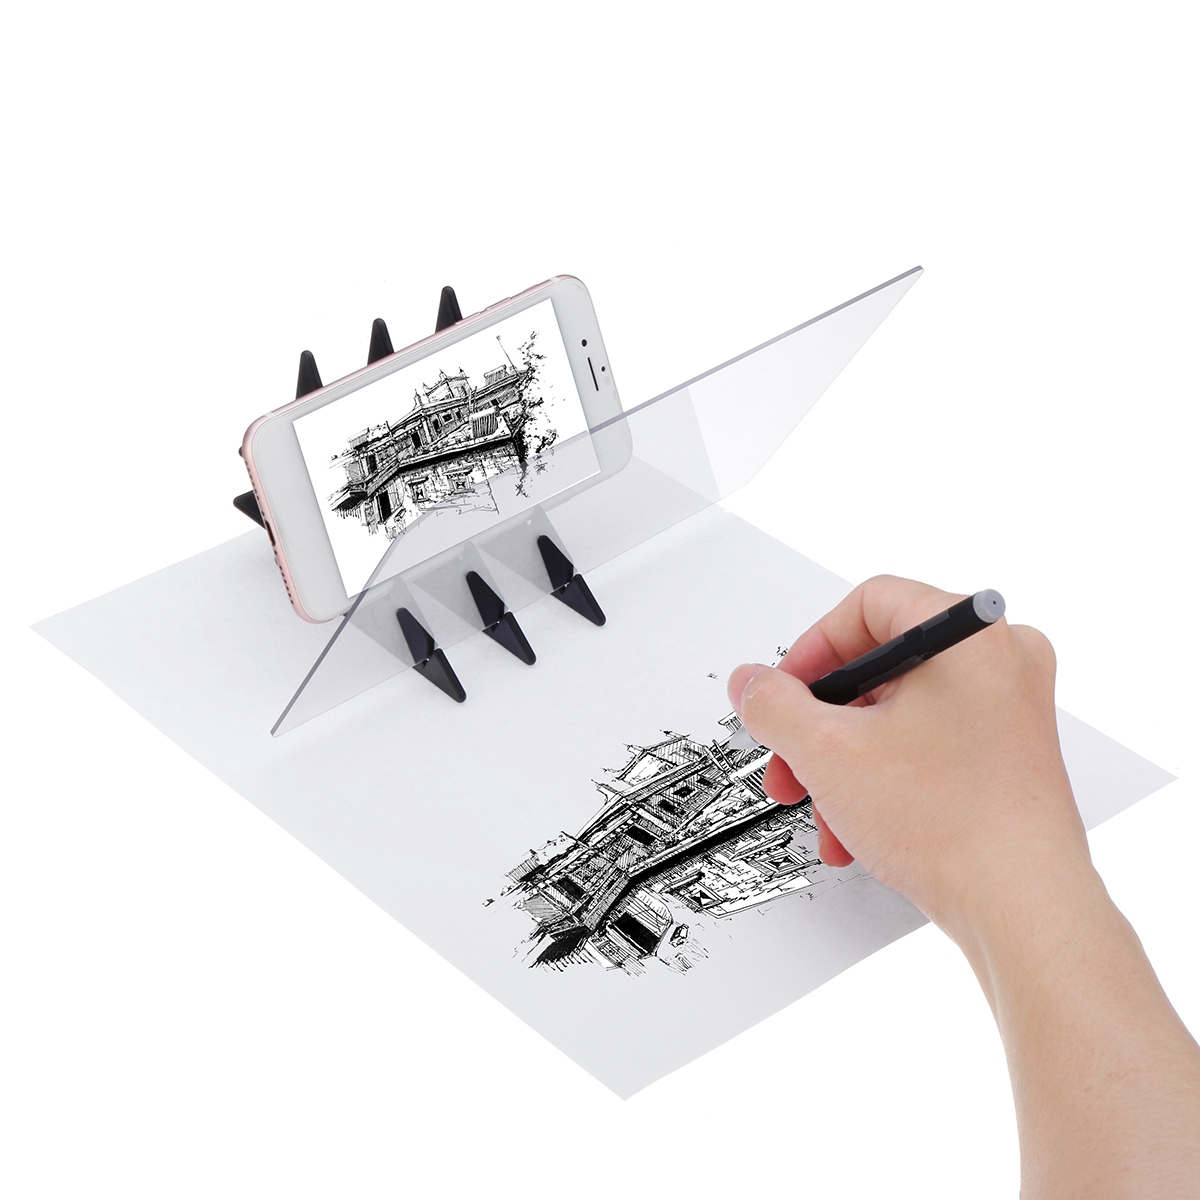 Led Stencil Tracing Drawing Board Light Sketch Mirror